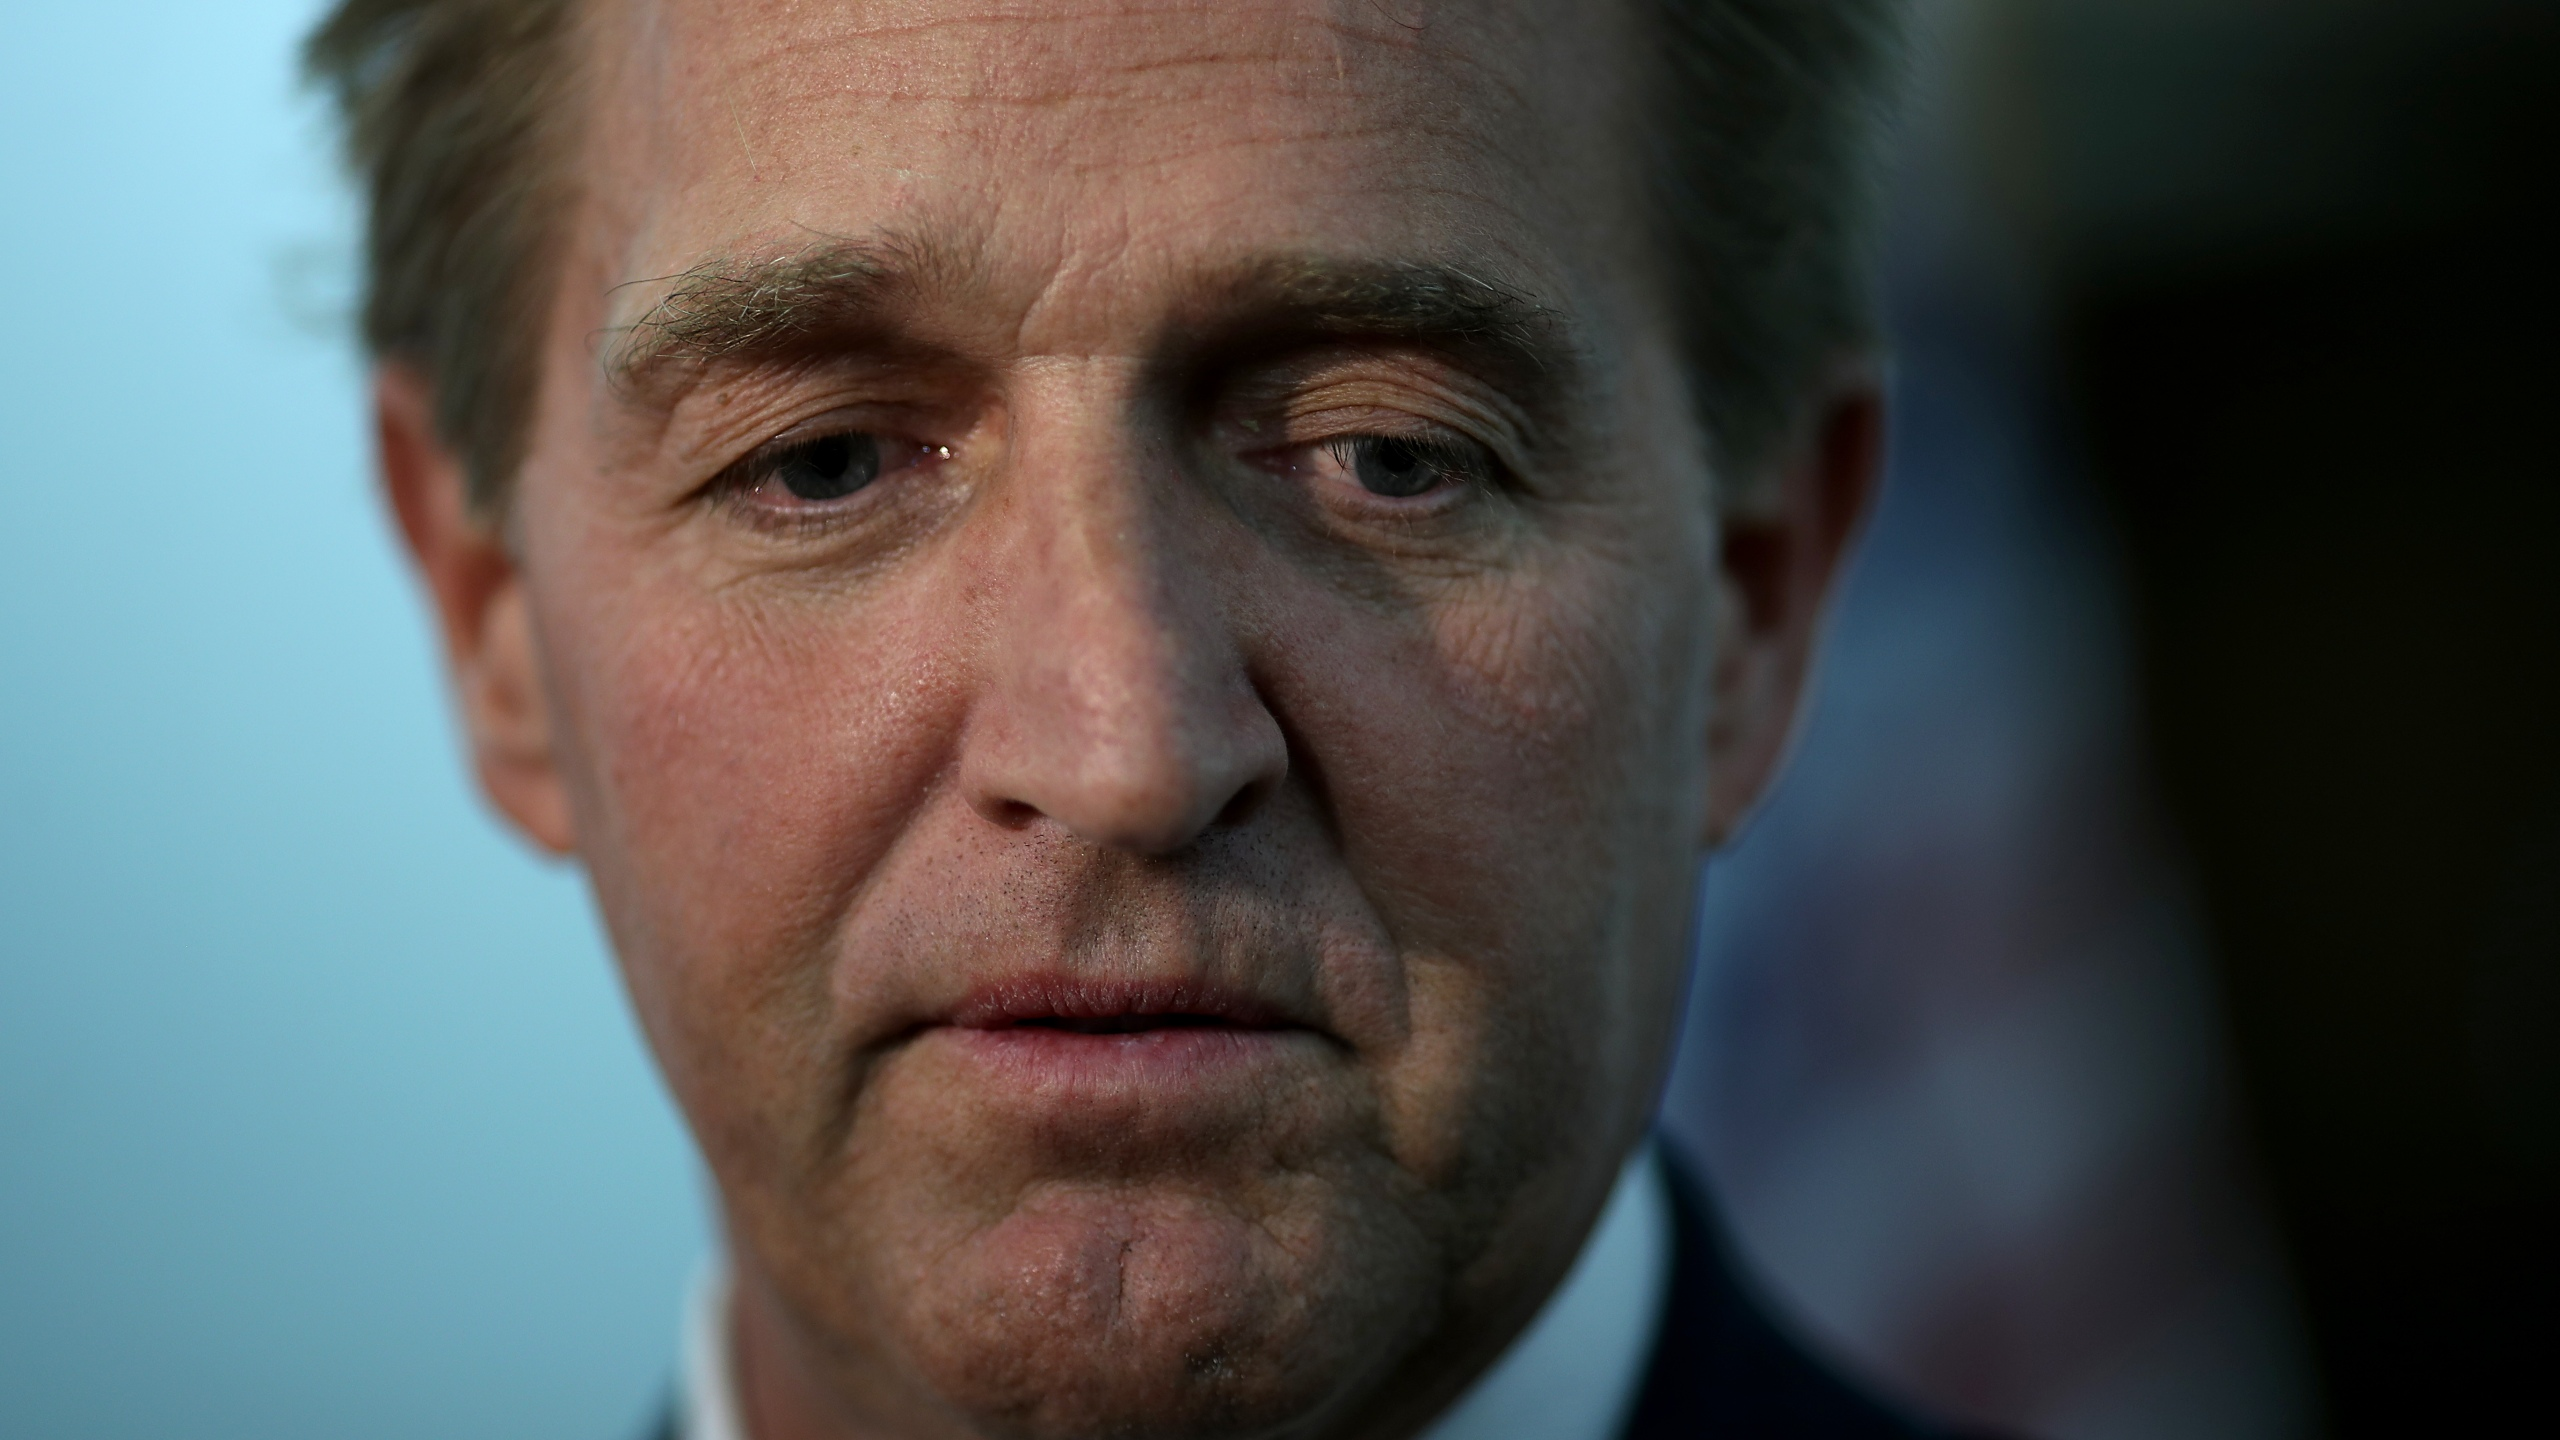 Jeff Flake speaks to reporters following a Senate Judiciary Committee hearing on Capitol Hill Nov. 15, 2018 in Washington, D.C. (Credit: Win McNamee/Getty Images)